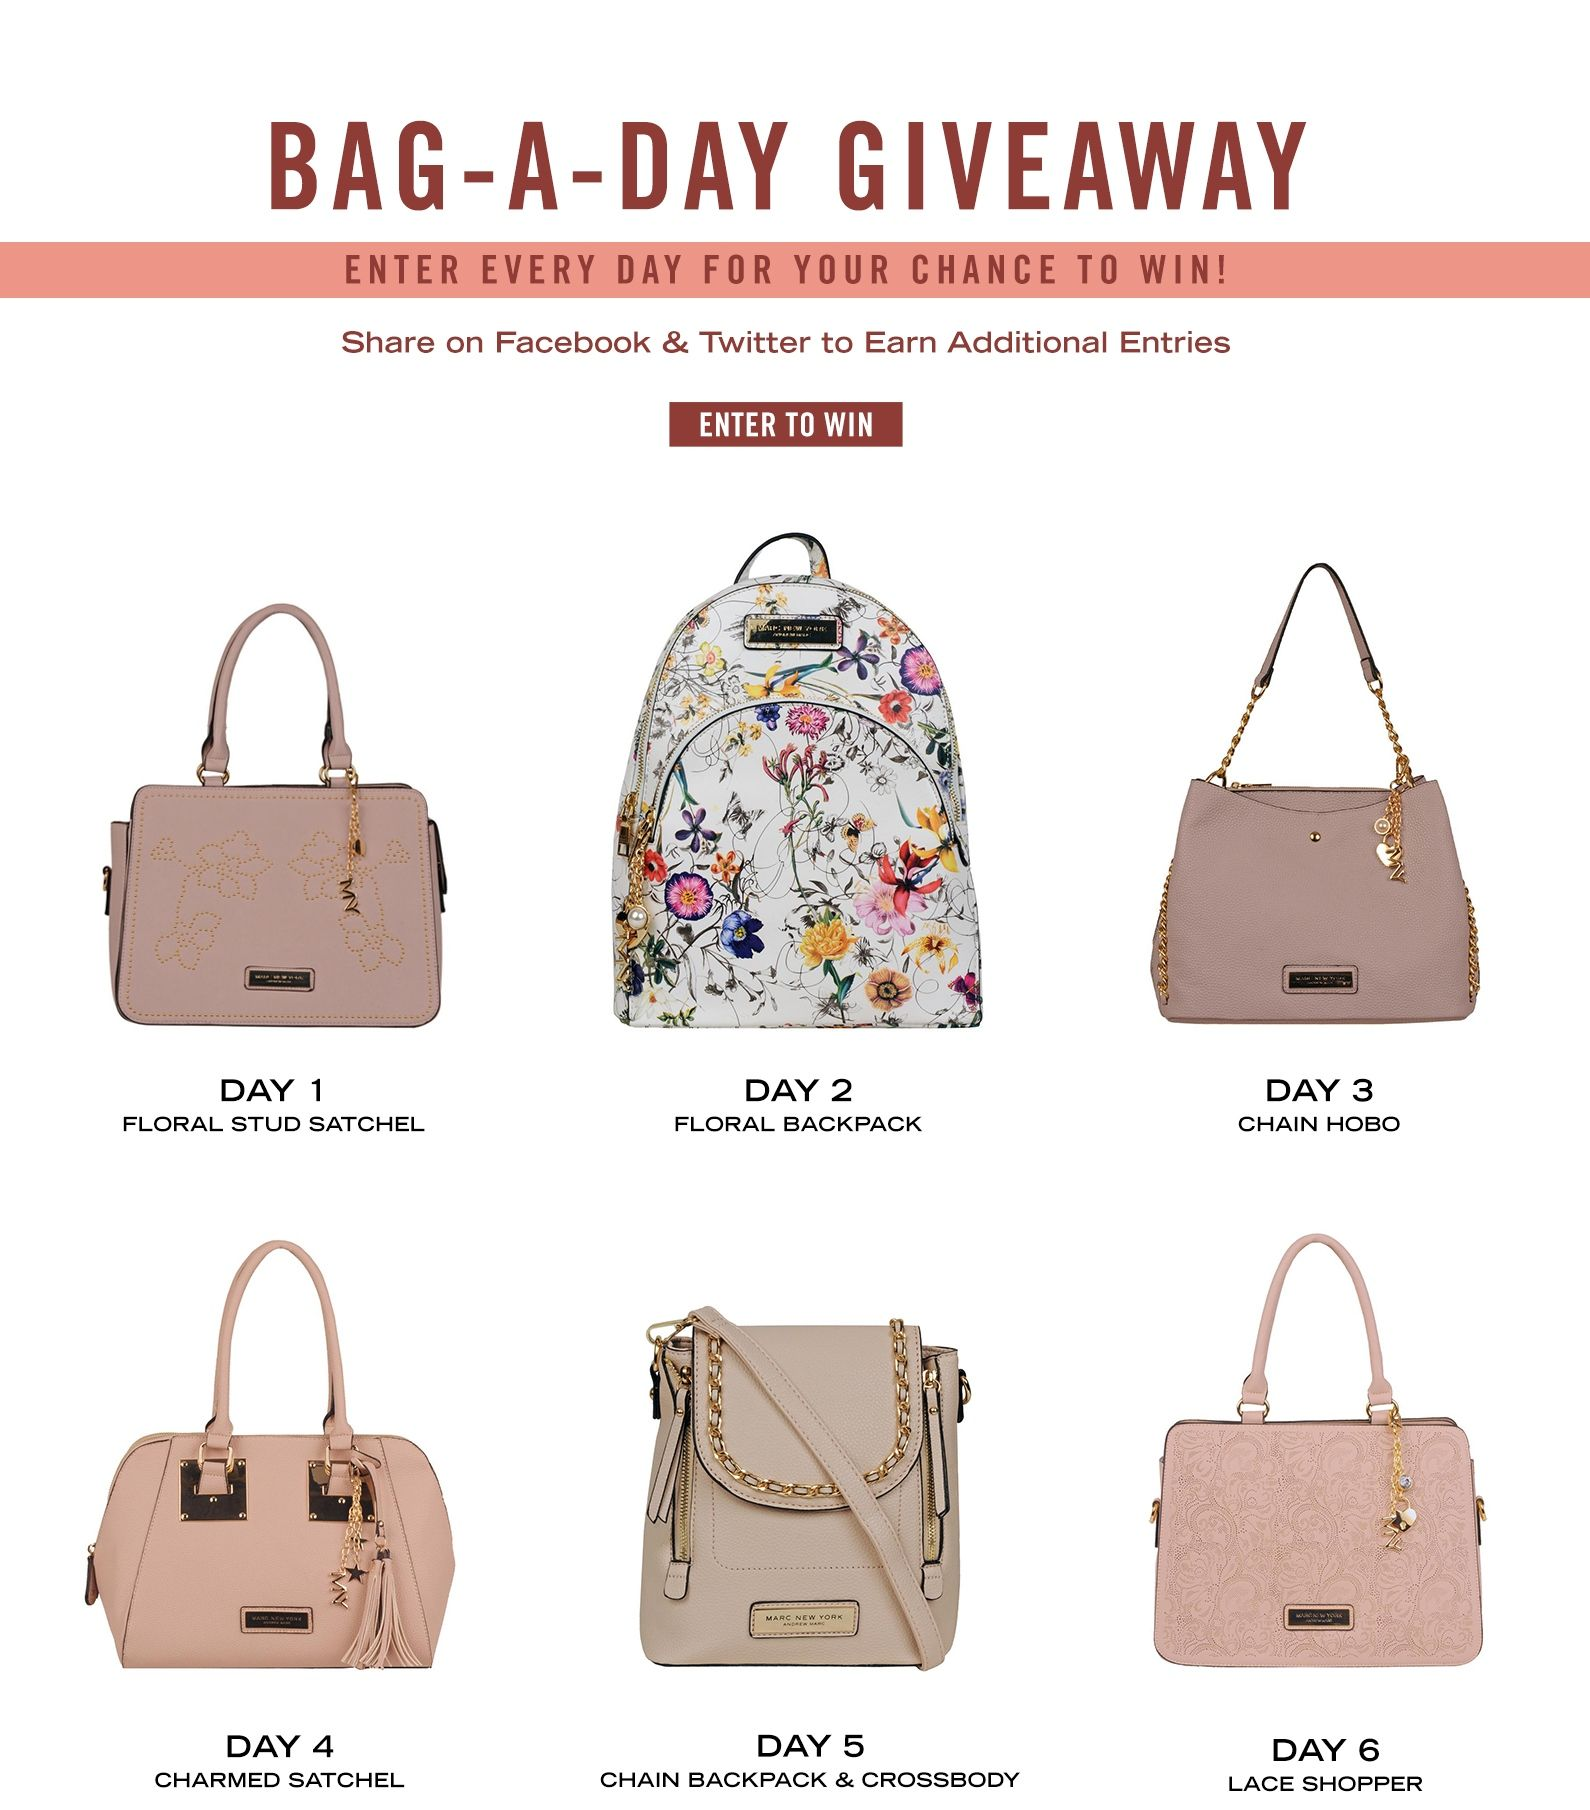 BagaDay Giveaway! Enter Every Day for Your Chance to Win